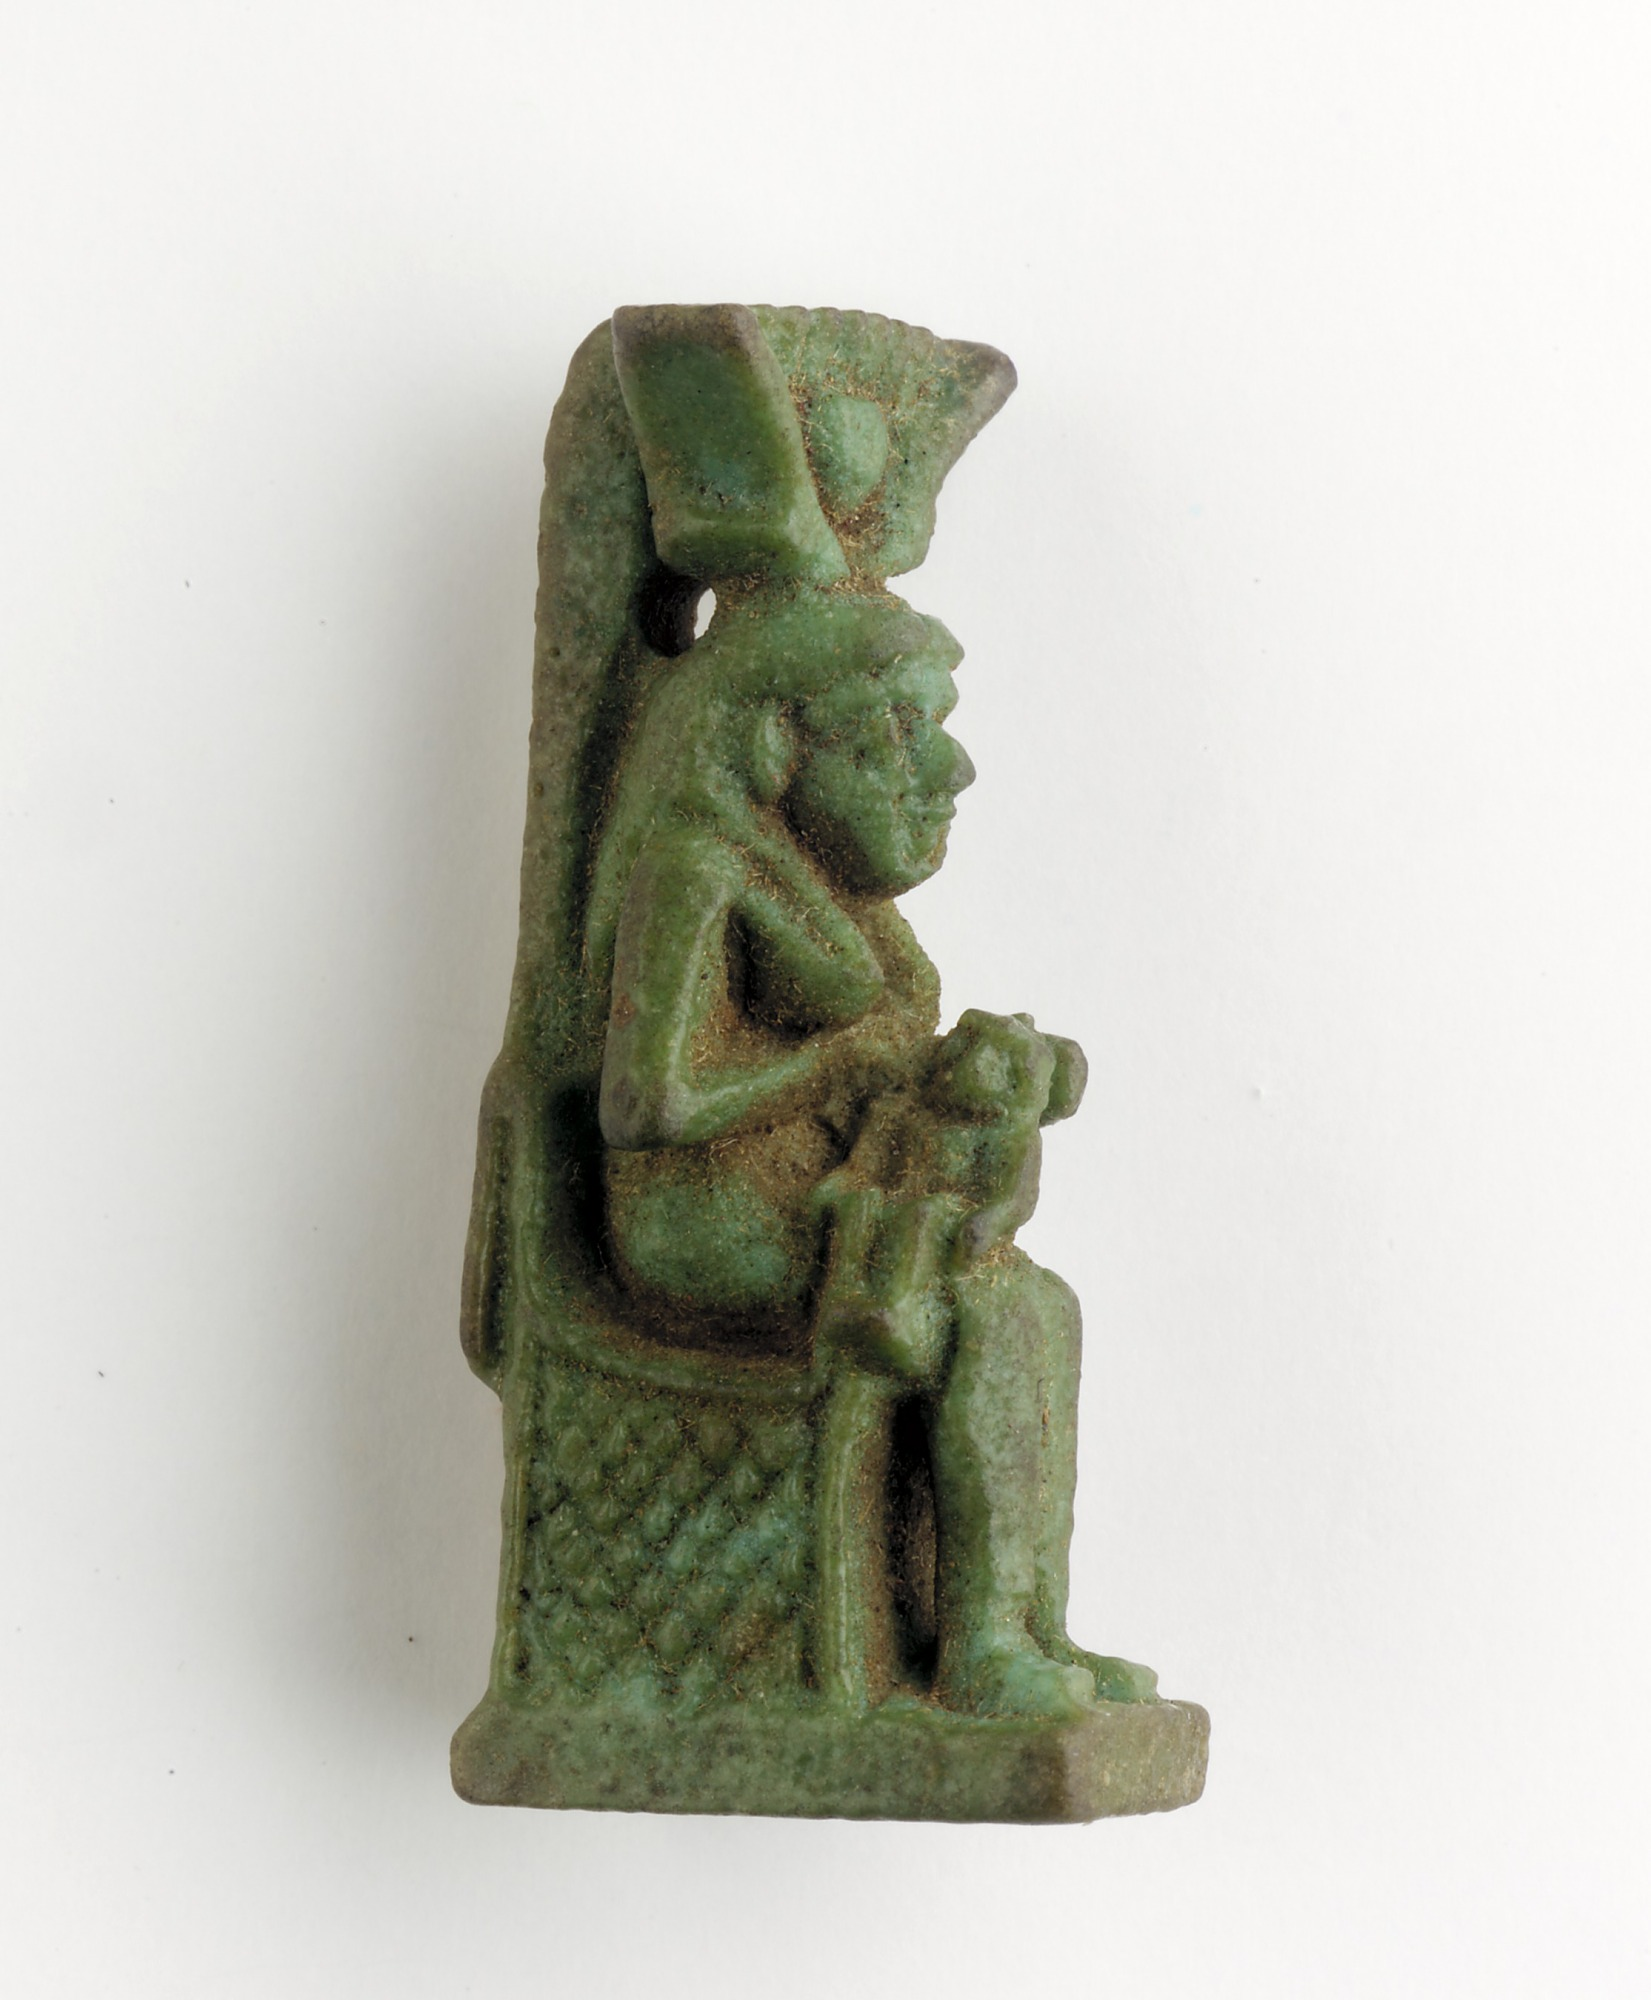 3/4 proper right: Amulet of Isis/Hathor and Horus